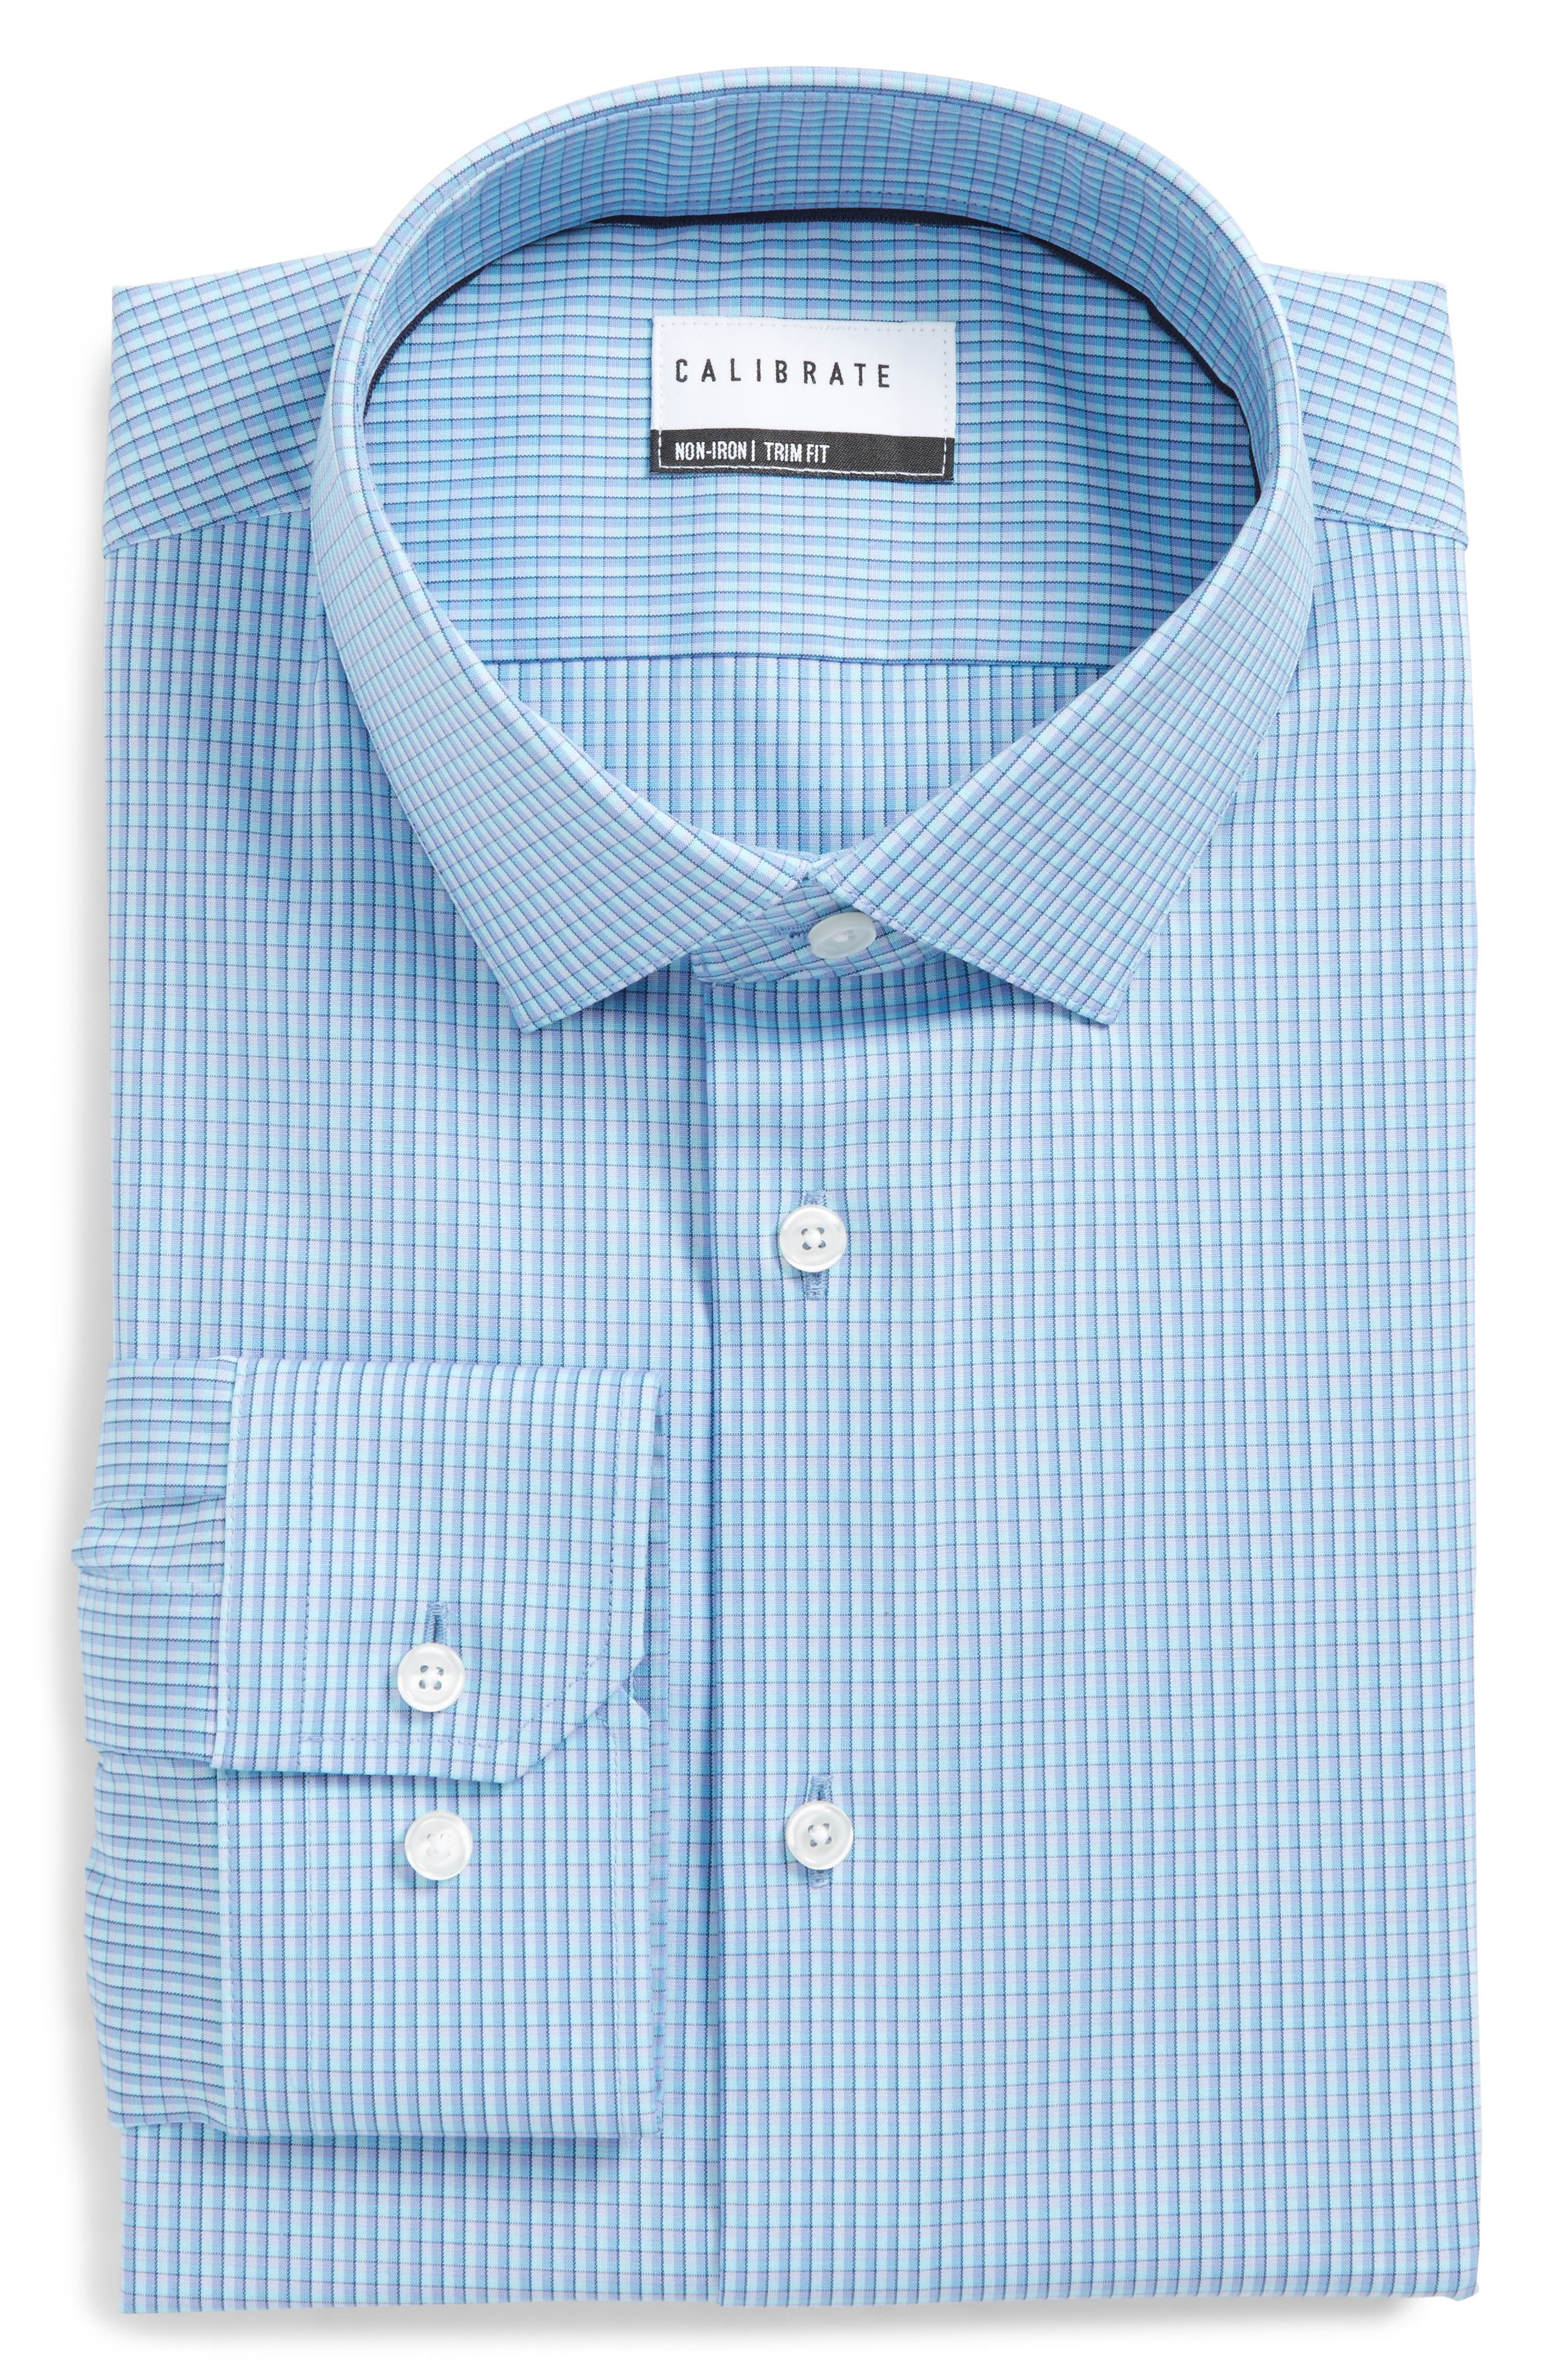 Alternate Image 1 Selected - Calibrate Trim Fit Stretch Non-Iron Check Dress Shirt